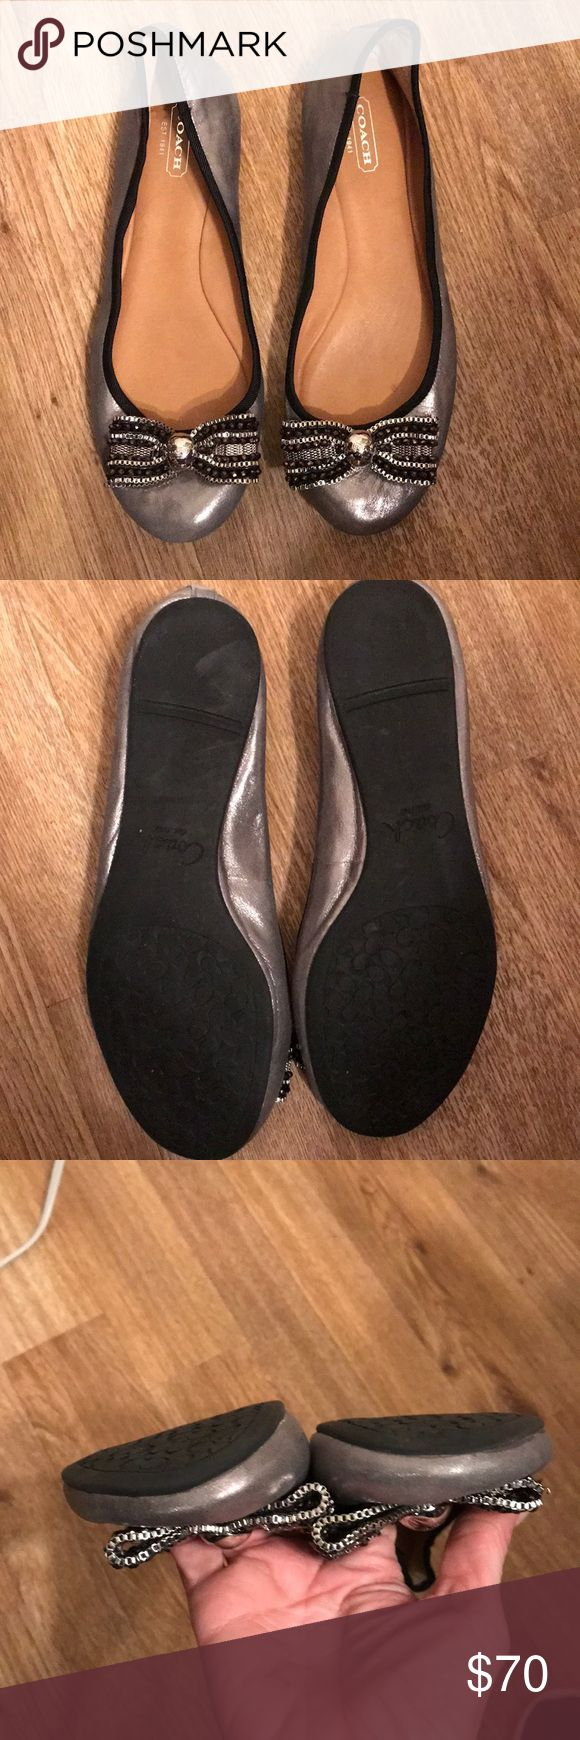 Coach Delores Dusted Flats Coach Delores Dusted Metallic Pewter Silver Ballet Flats with Bow leather  Good condition 8 Coach Shoes Flats & Loafers